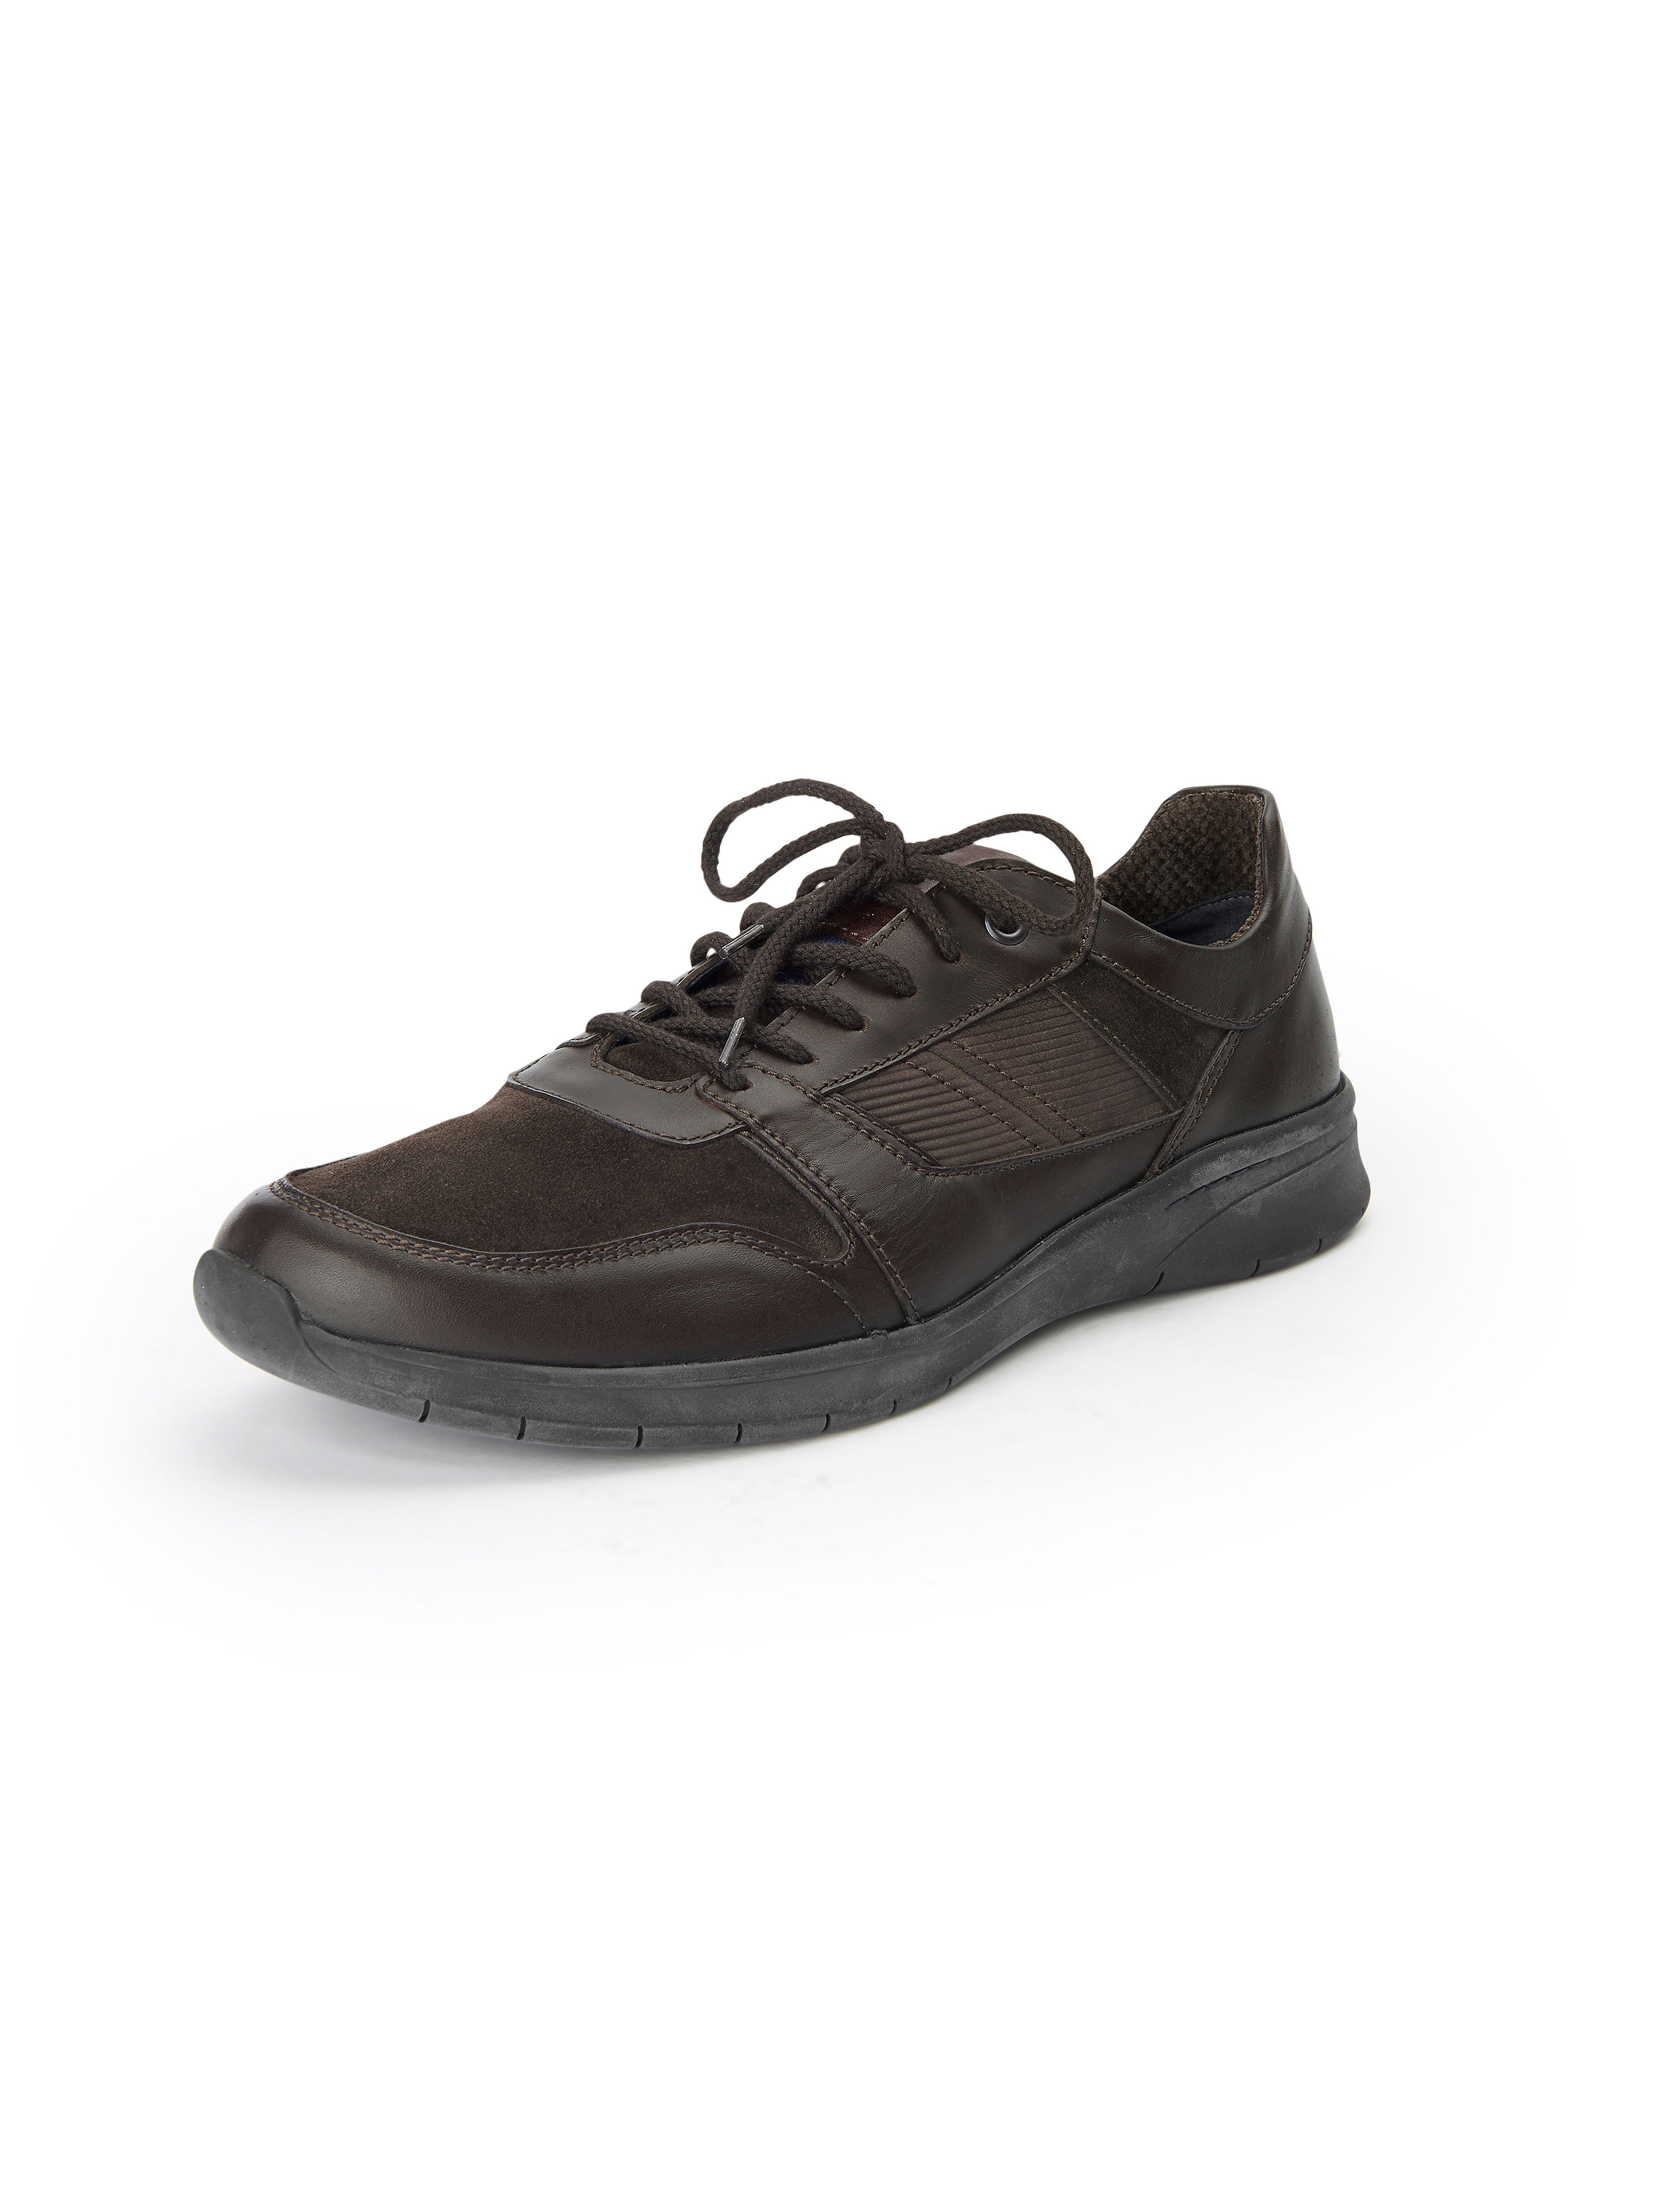 Les sneakers Heimito cuir nappa Sioux marron taille 43